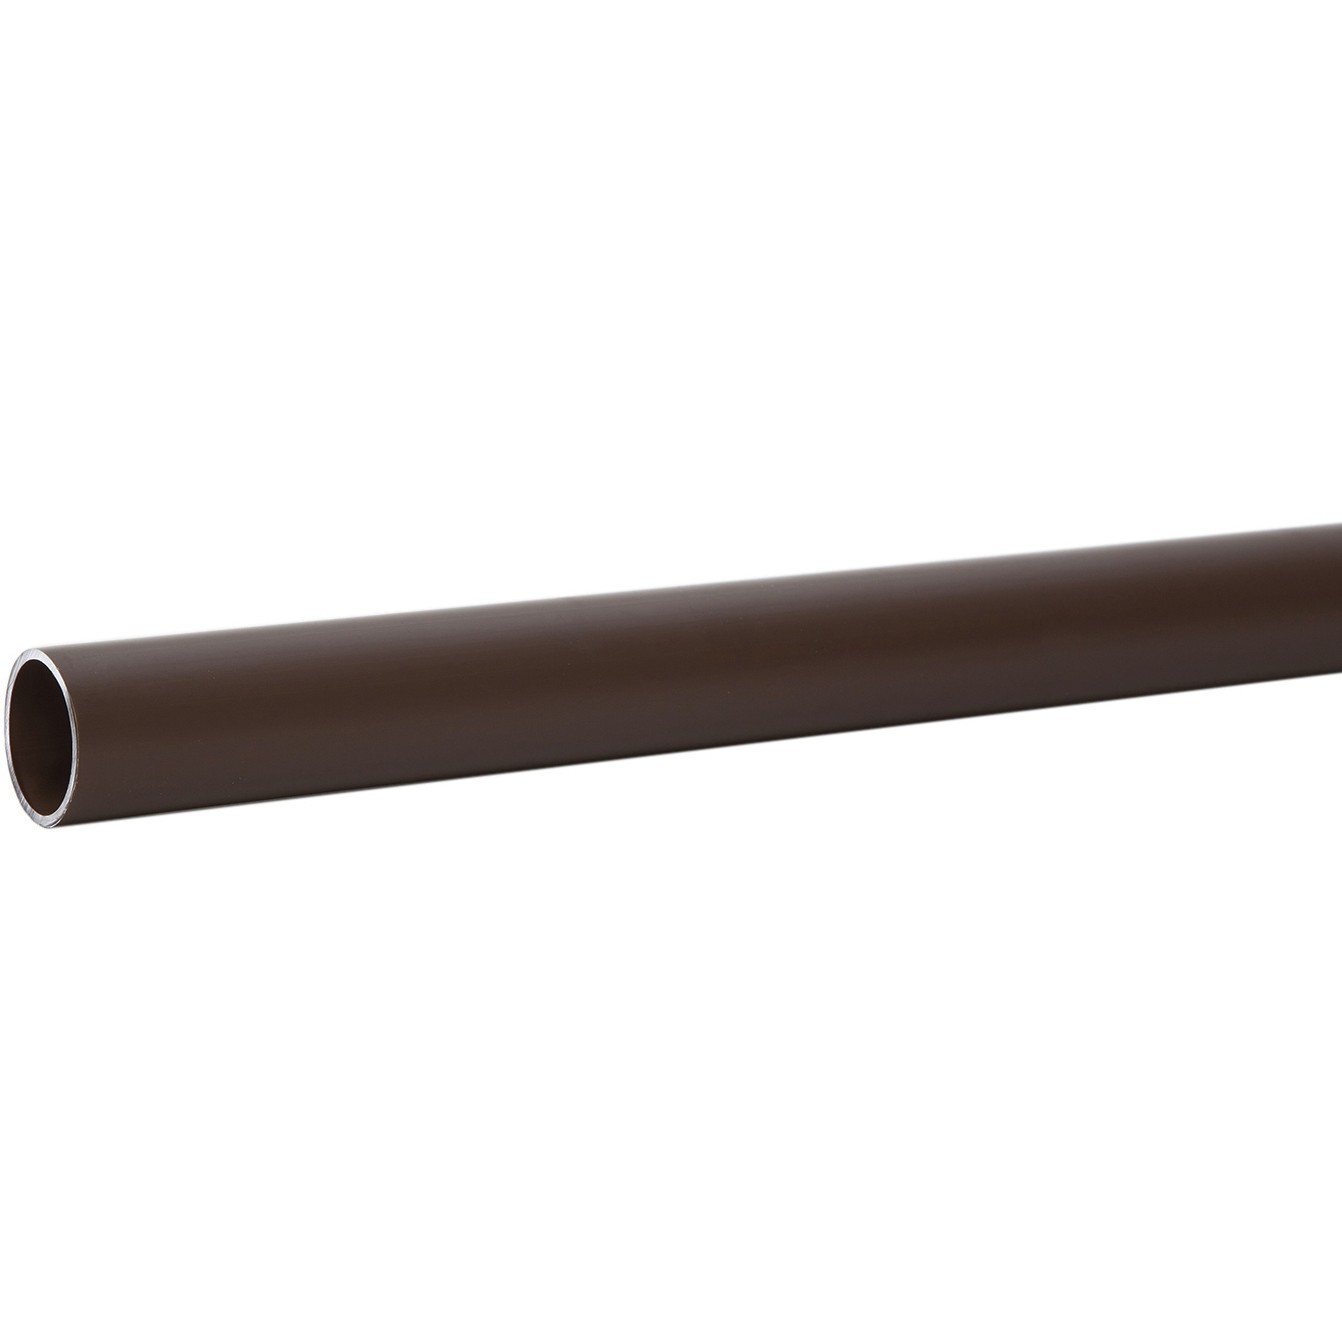 Polypipe 32mm Push Fit Waste Pipe - Brown, 3 metre